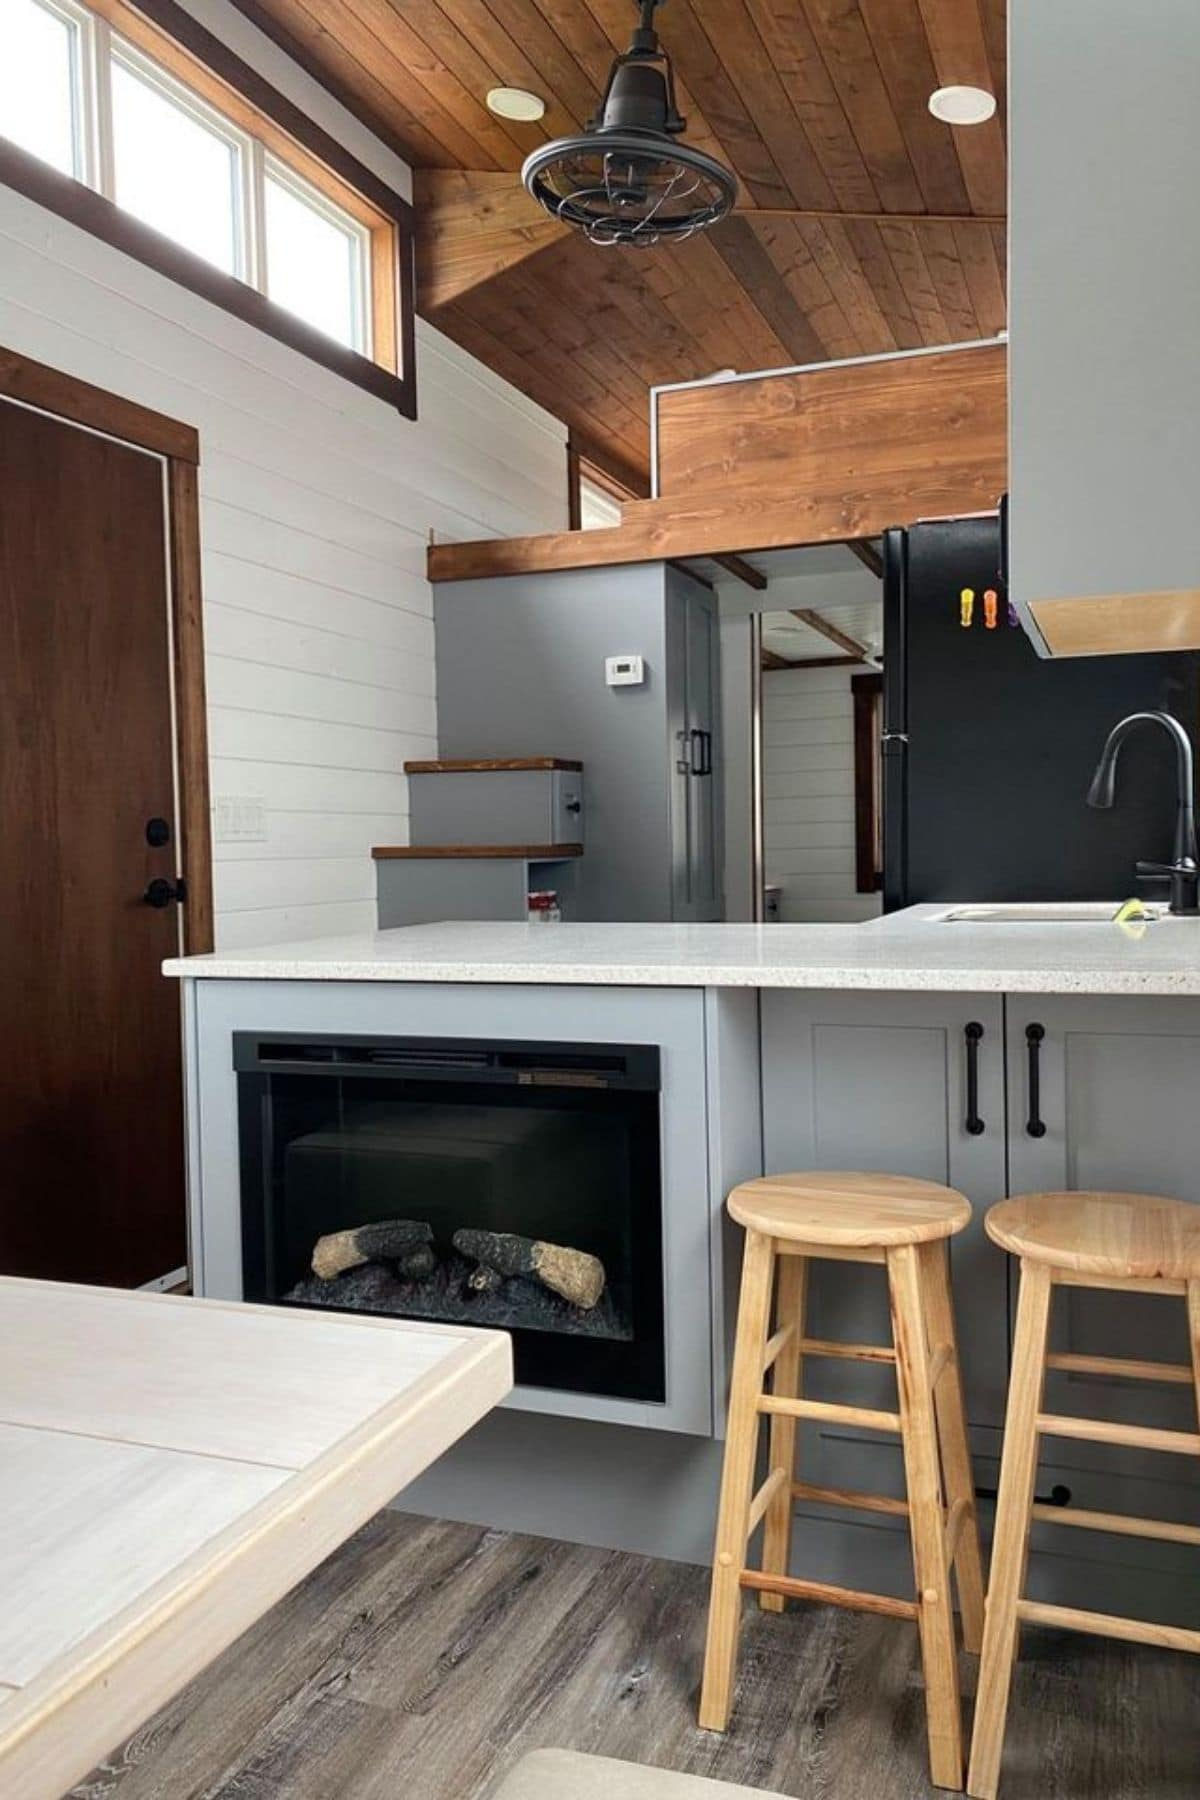 bar stools next to fireplace in kitchen cabinet